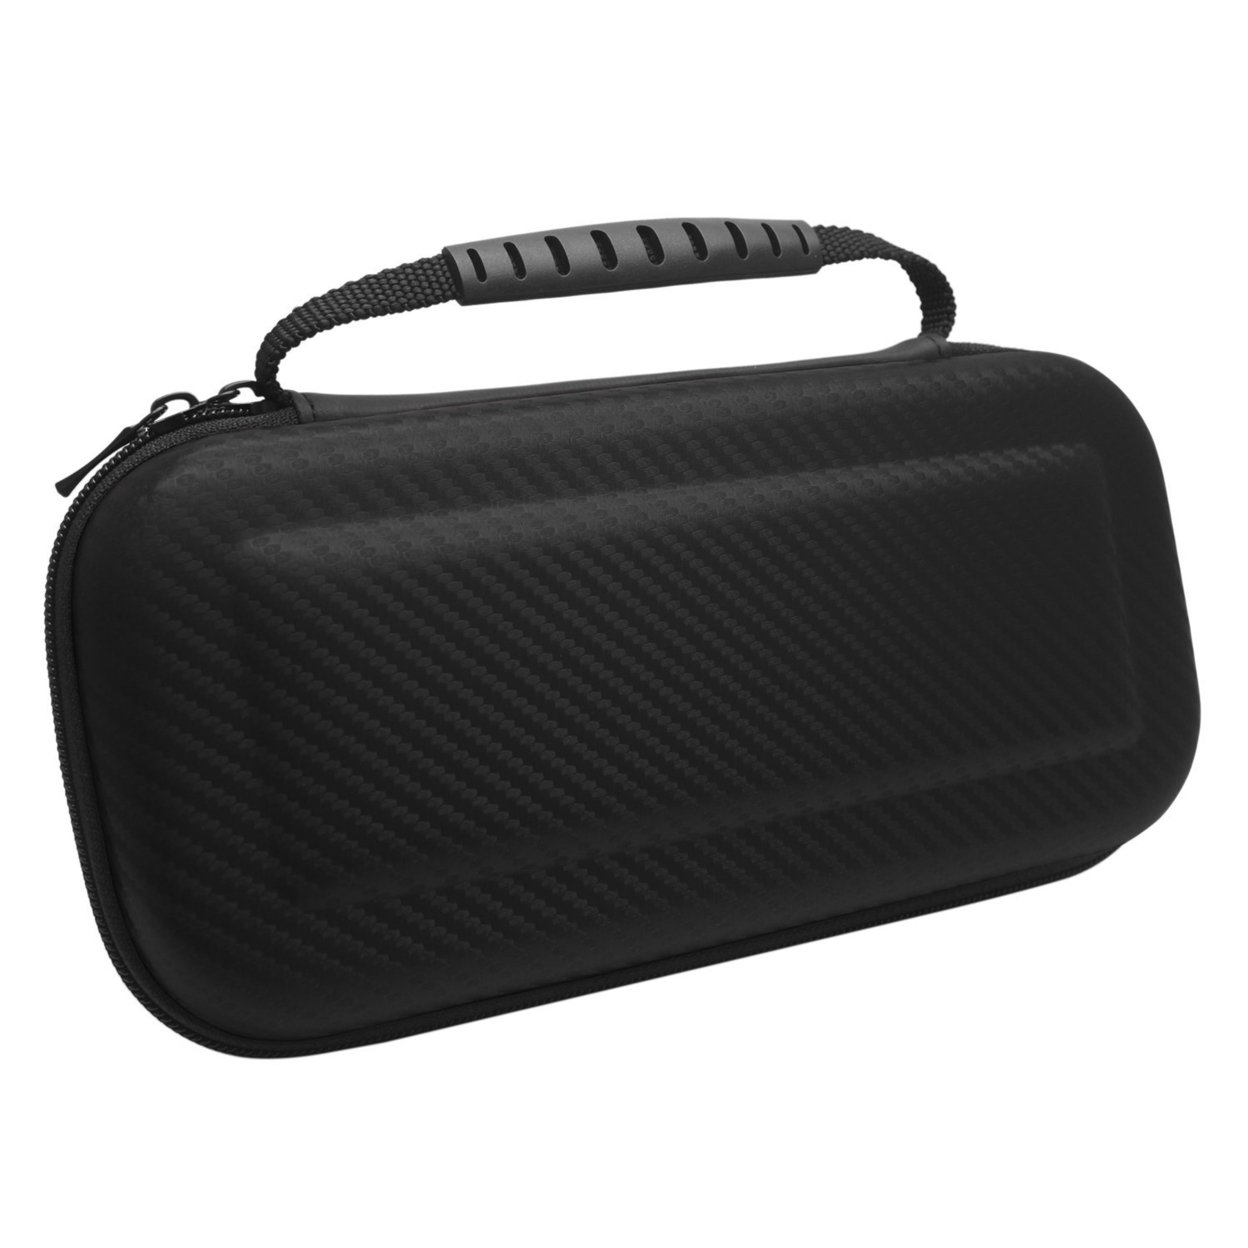 Nintendo Switch Case Hard Shell Travel Carrying Protective Storage Bag for Nintendo Switch-Gray [video game] … - Black 58ff675bc915e44bb92e25ba